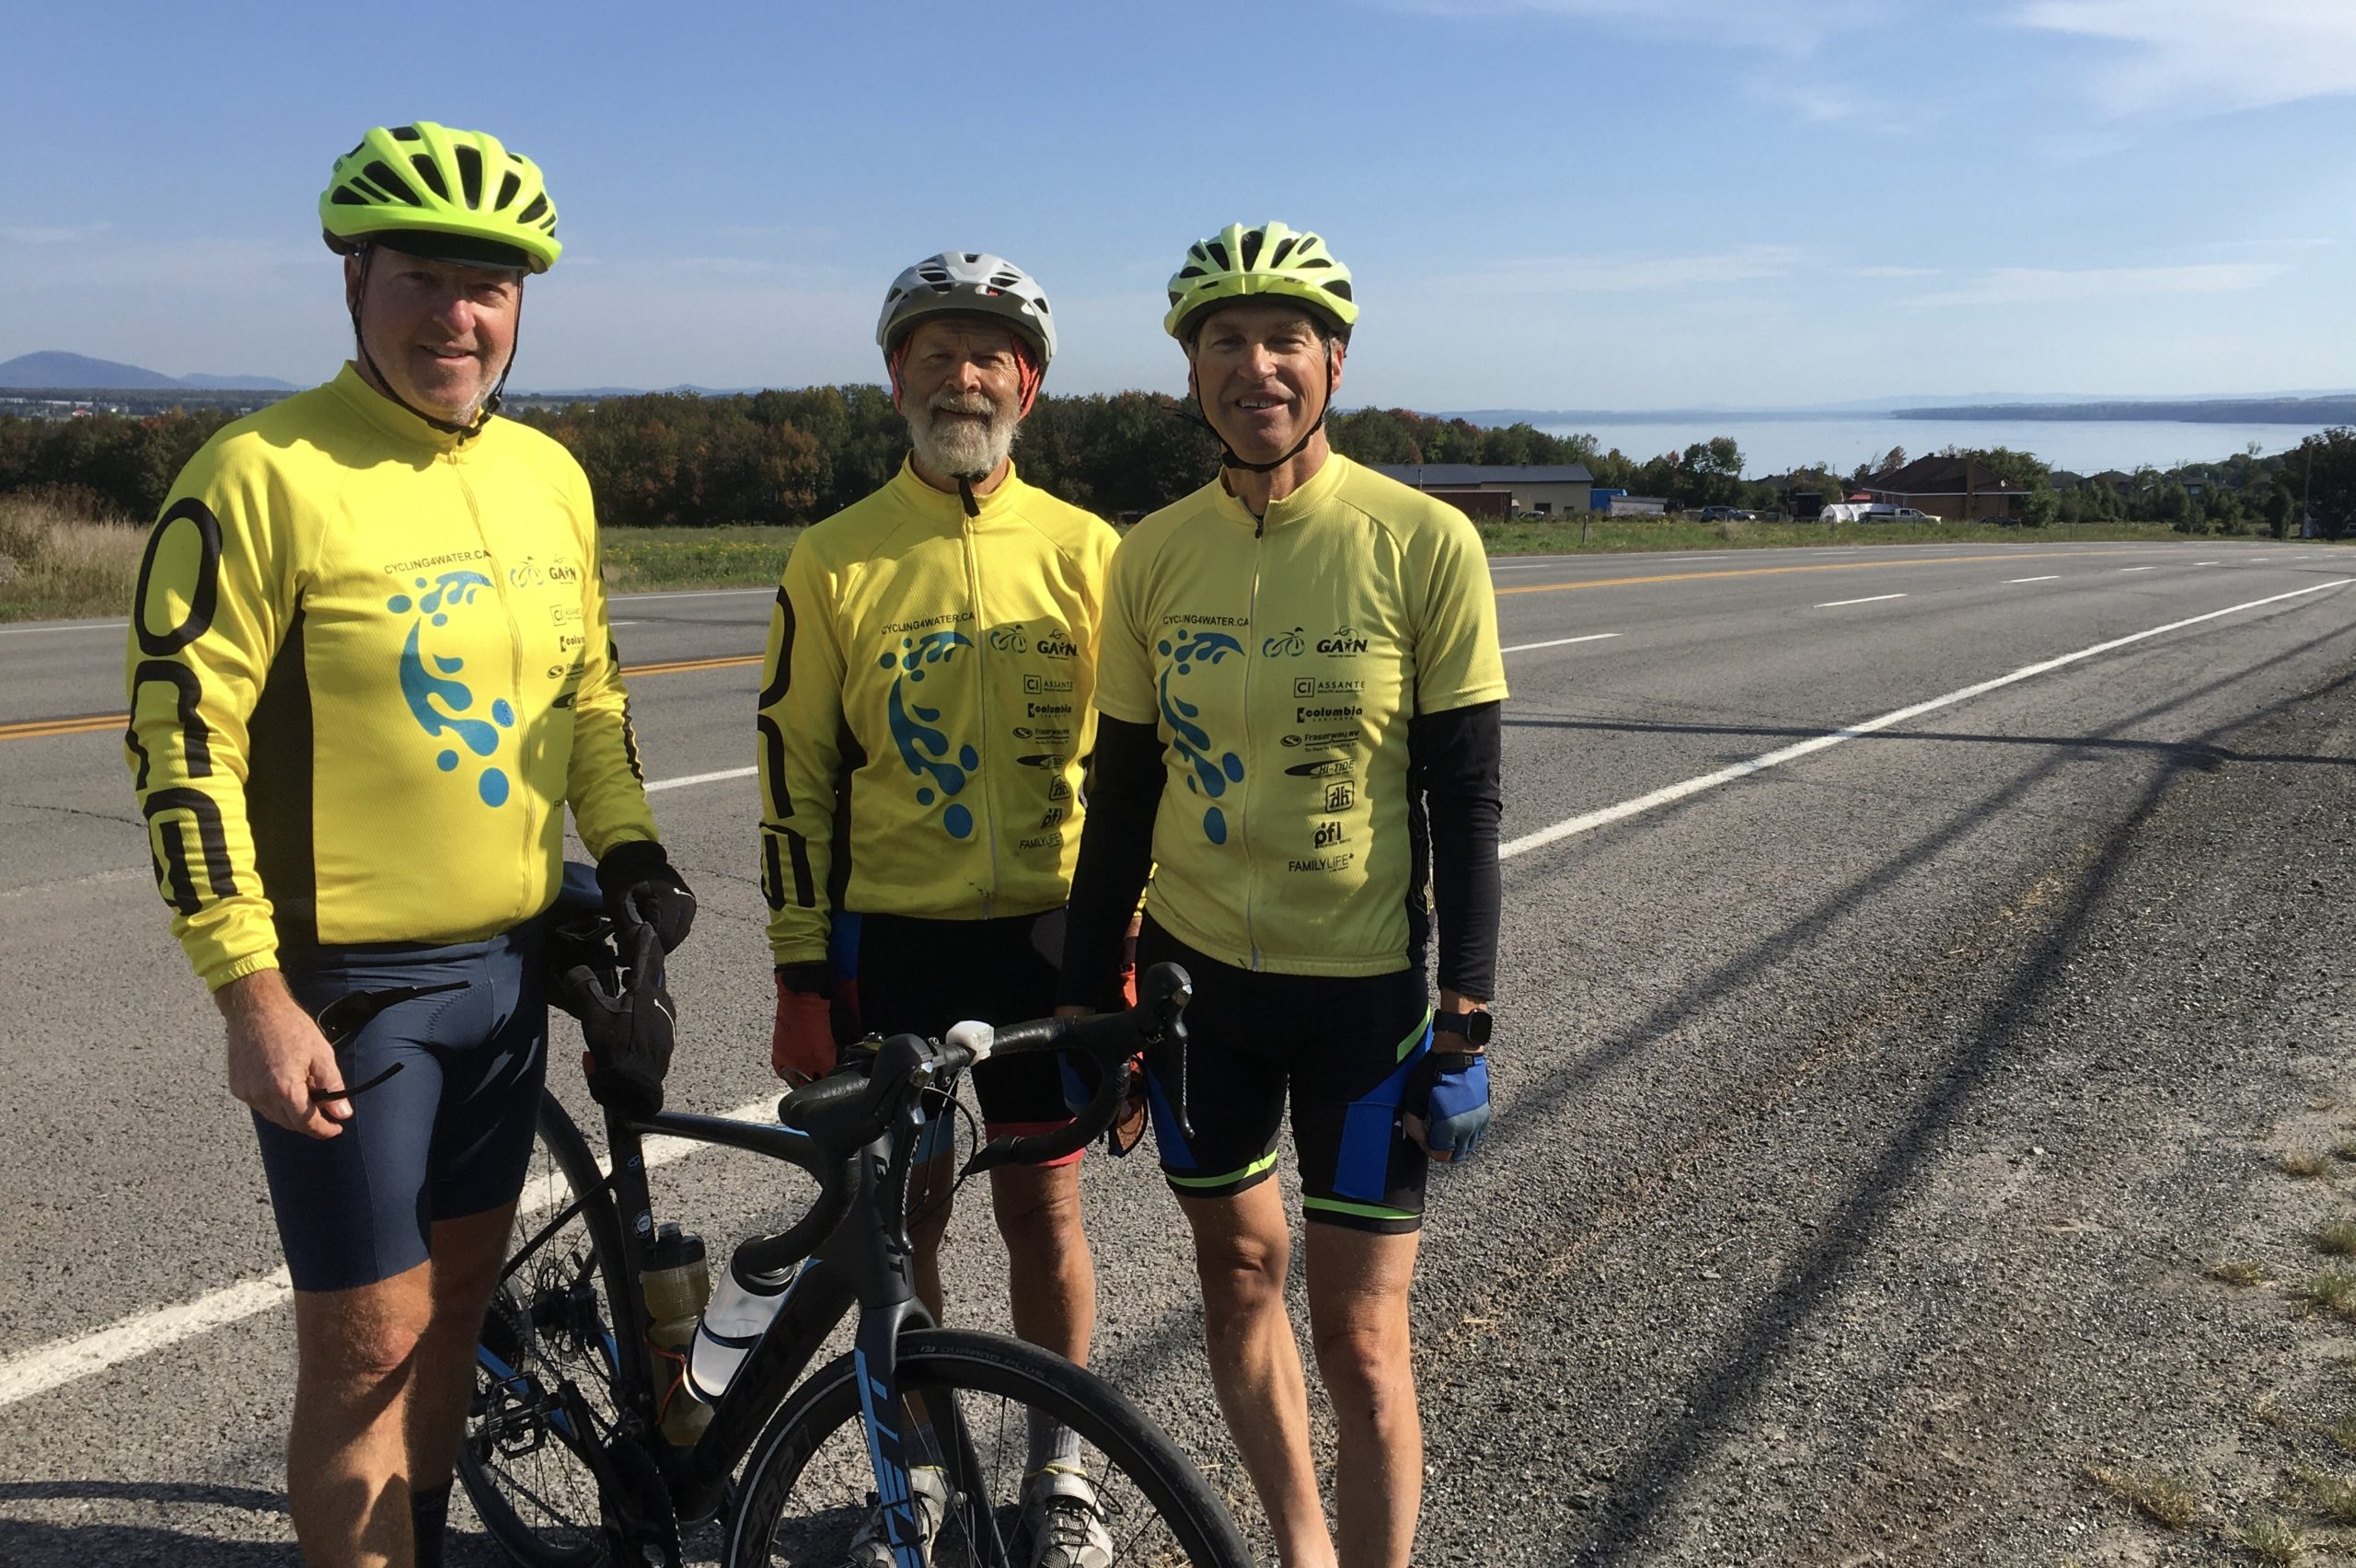 Day 57: Levis/Quebec City to Riviere-du-Loup – 201 KM